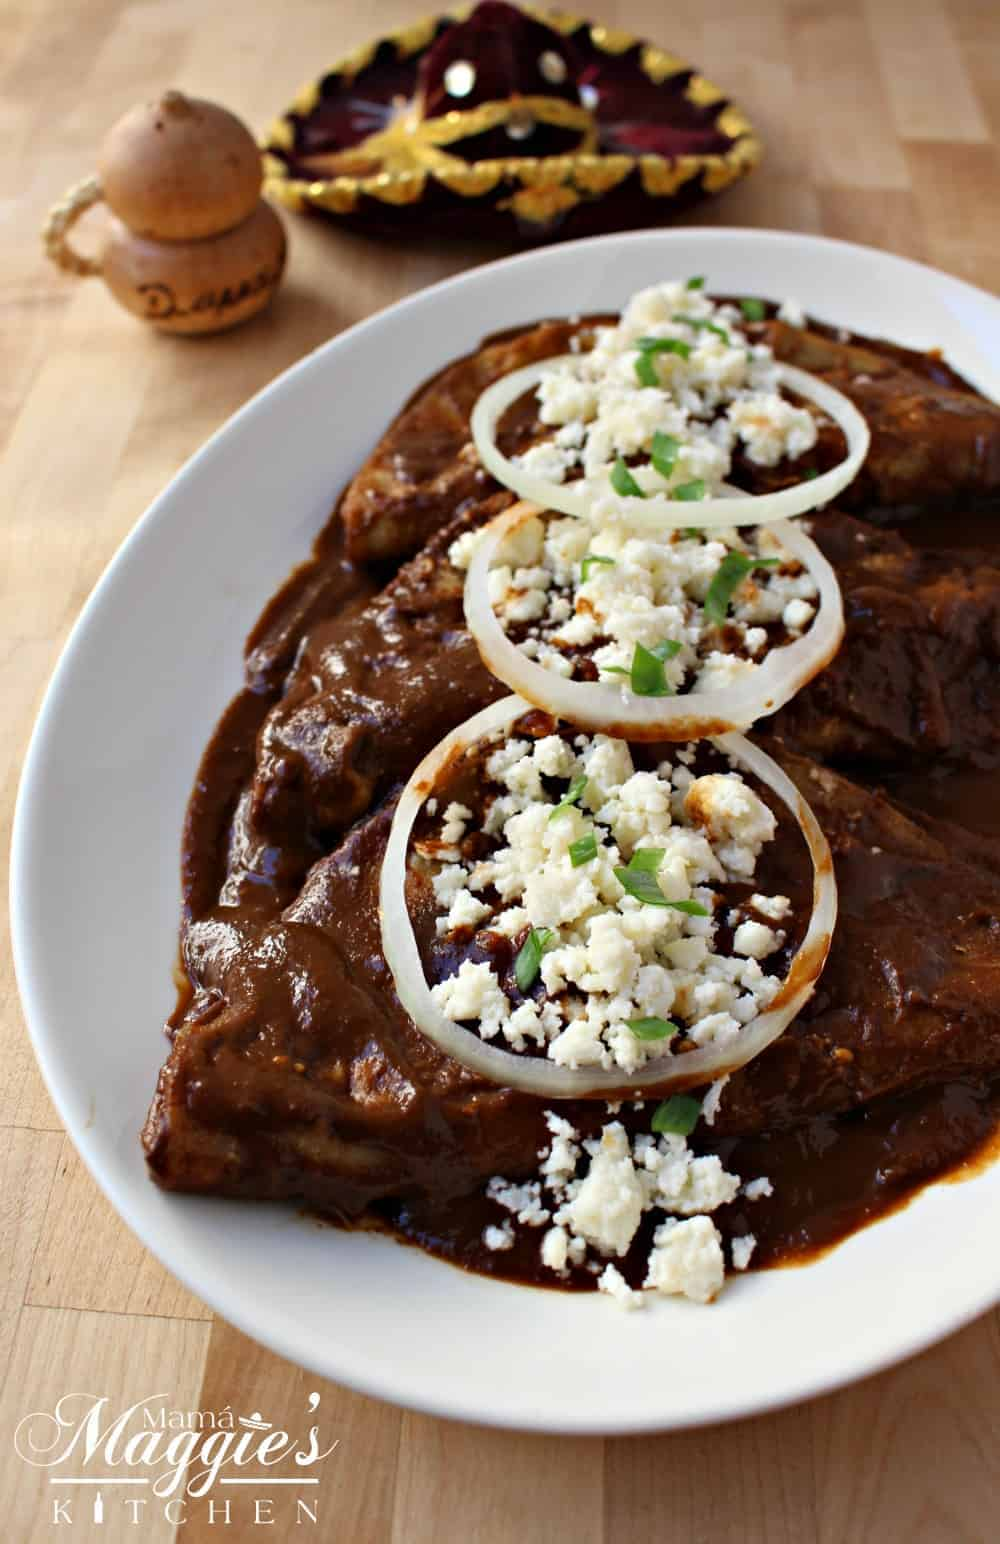 Enchiladas Dulces (Sweet Enchiladas) on a white plate topped with queso fresco and onion slices.